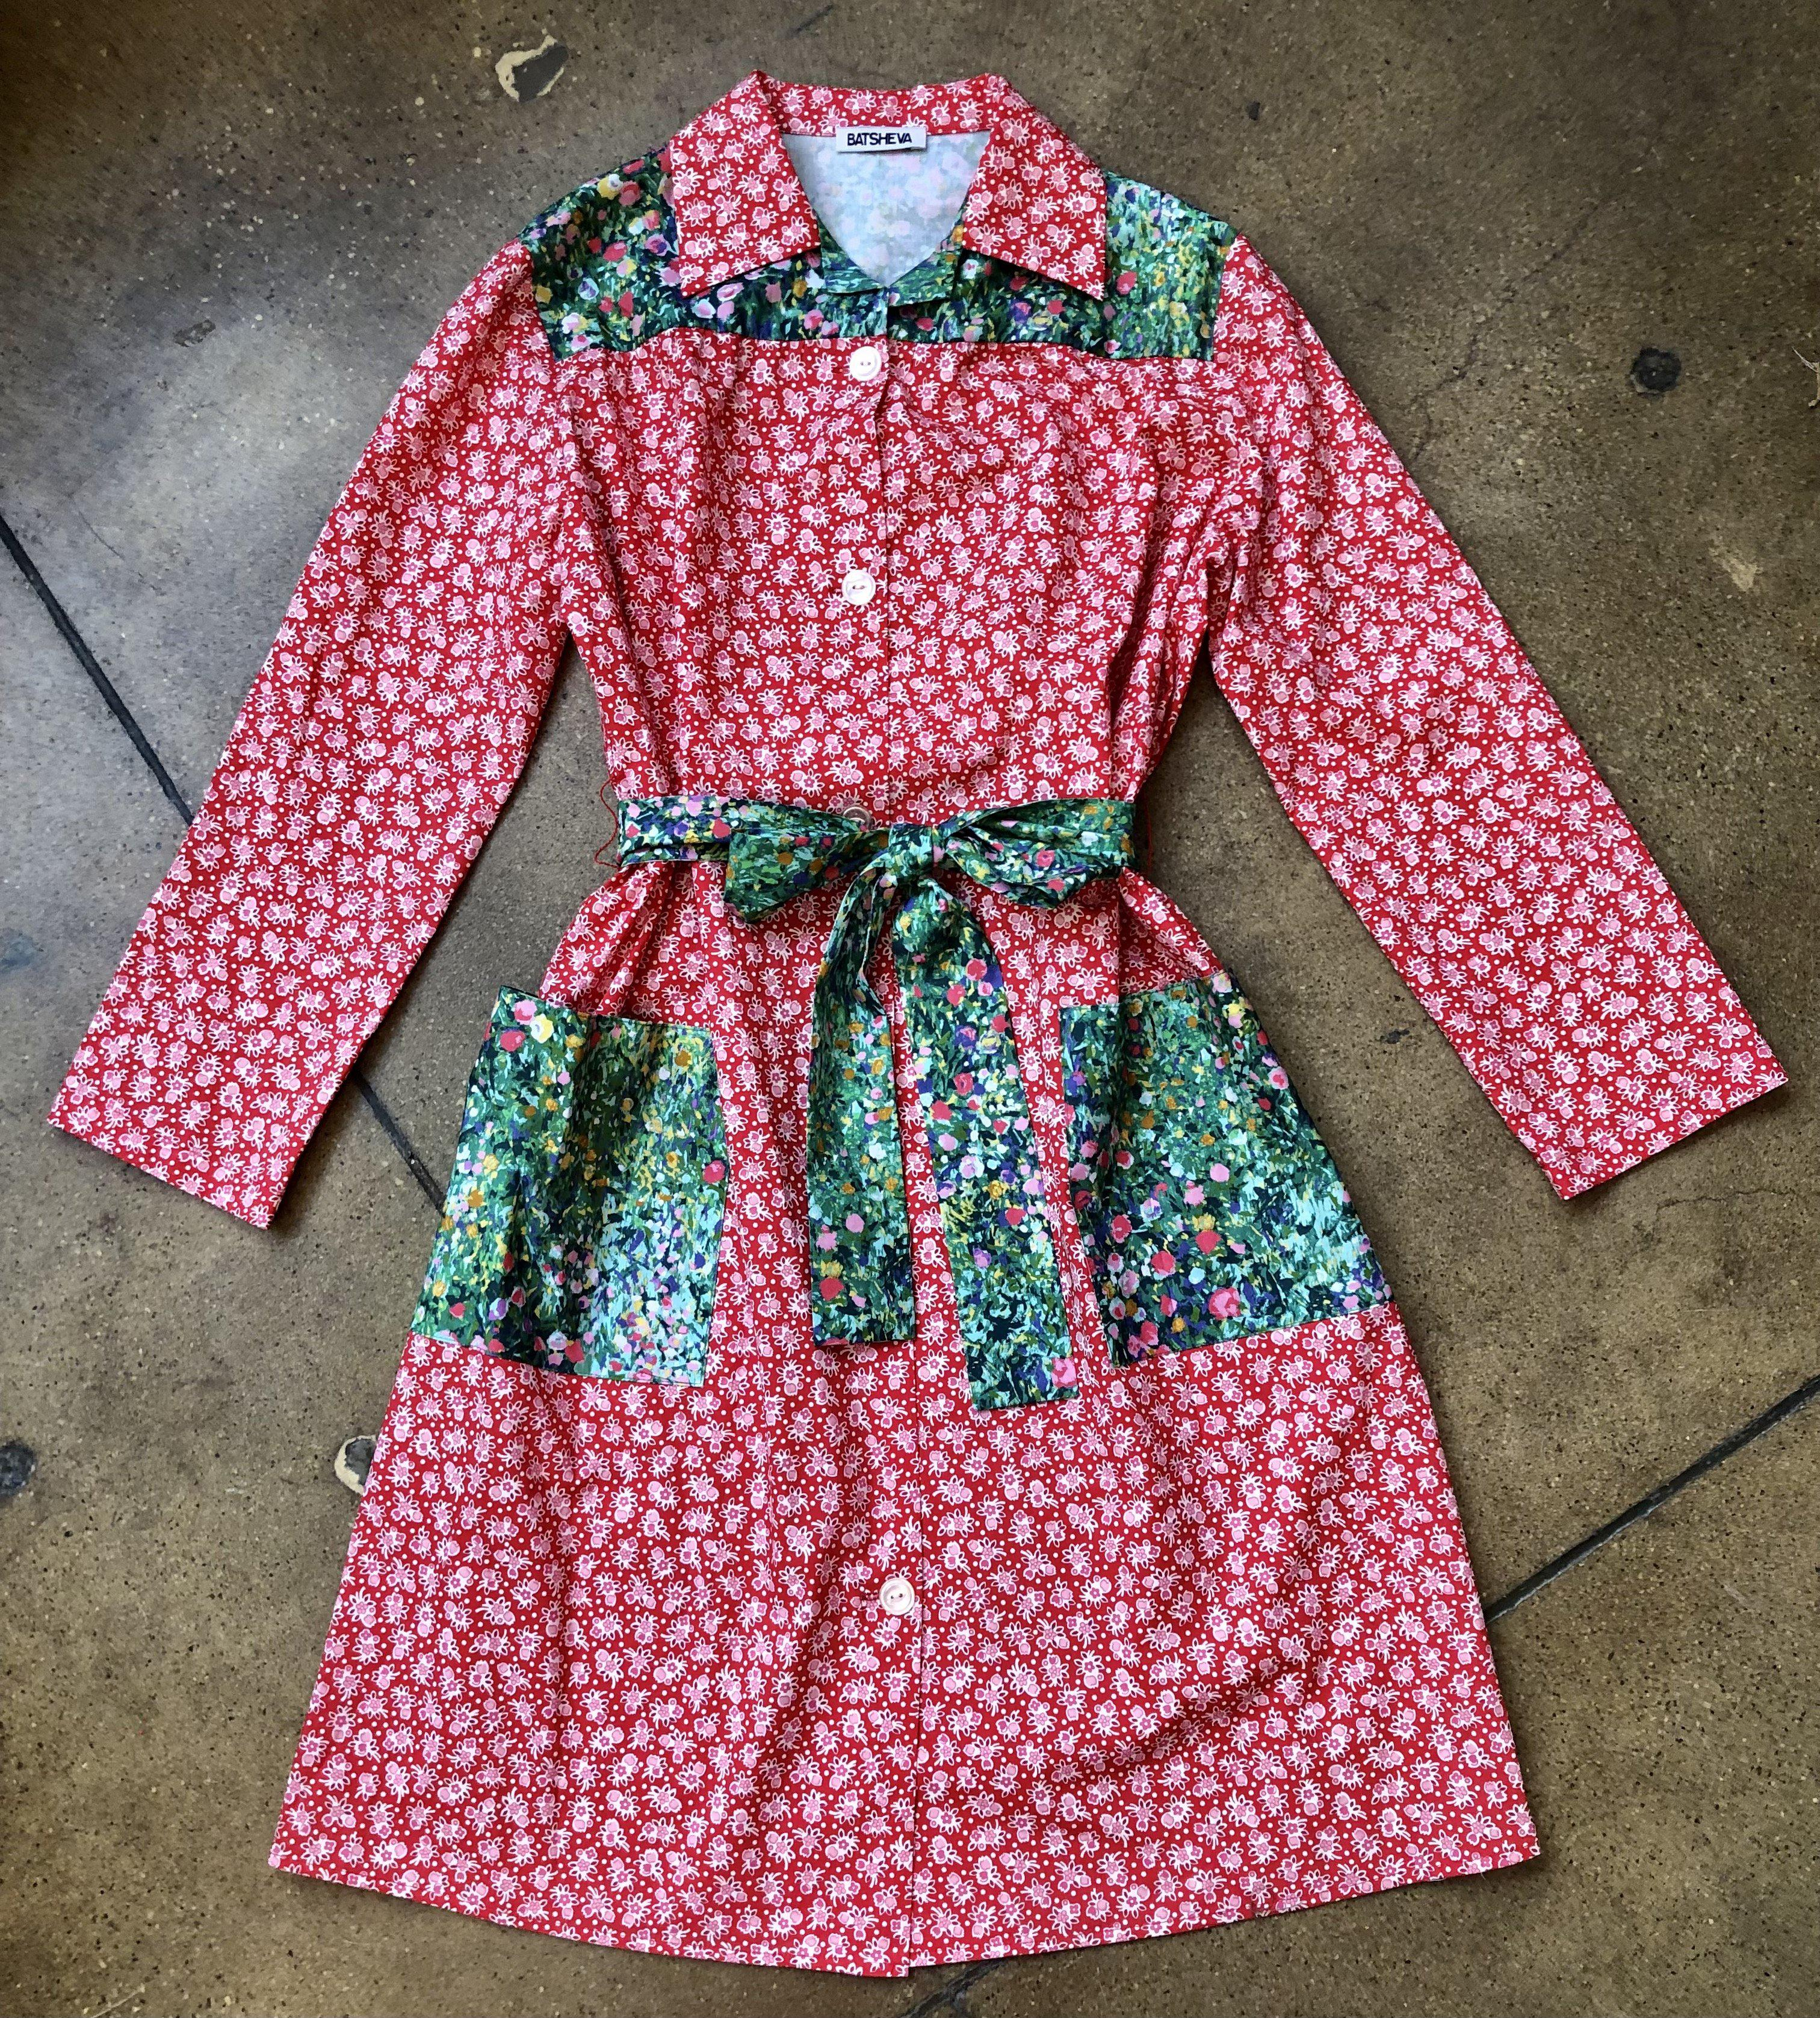 Long Sleeve Housedress in Red Floral and Green Monet